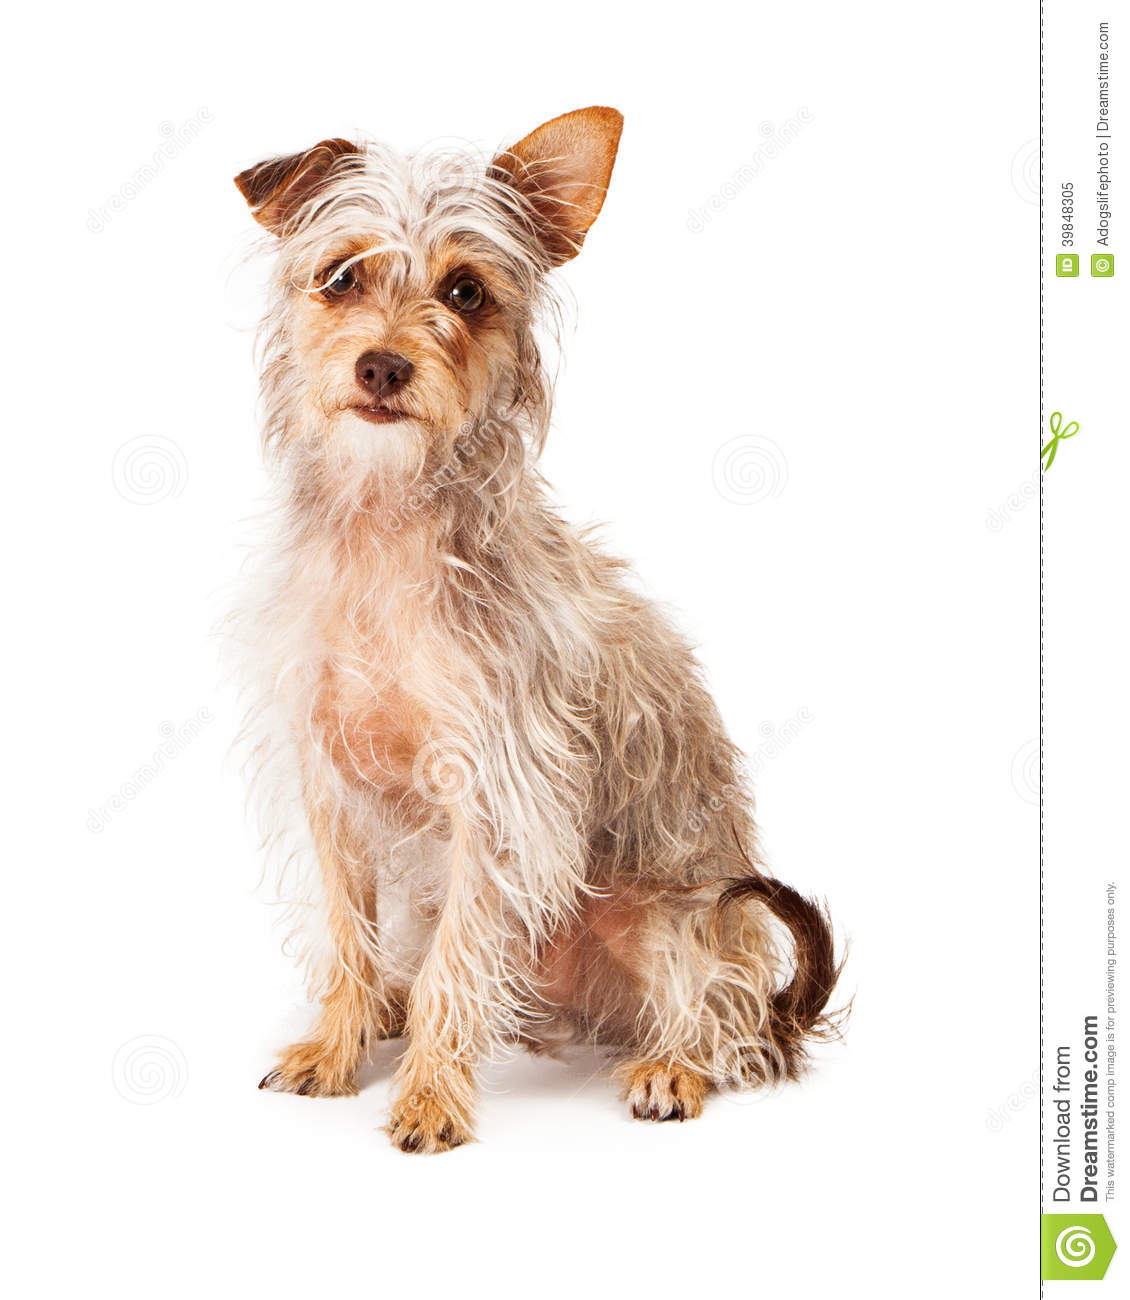 Scrufy Terrier Crossbreed Sitting Stock Image - Image of breed ...